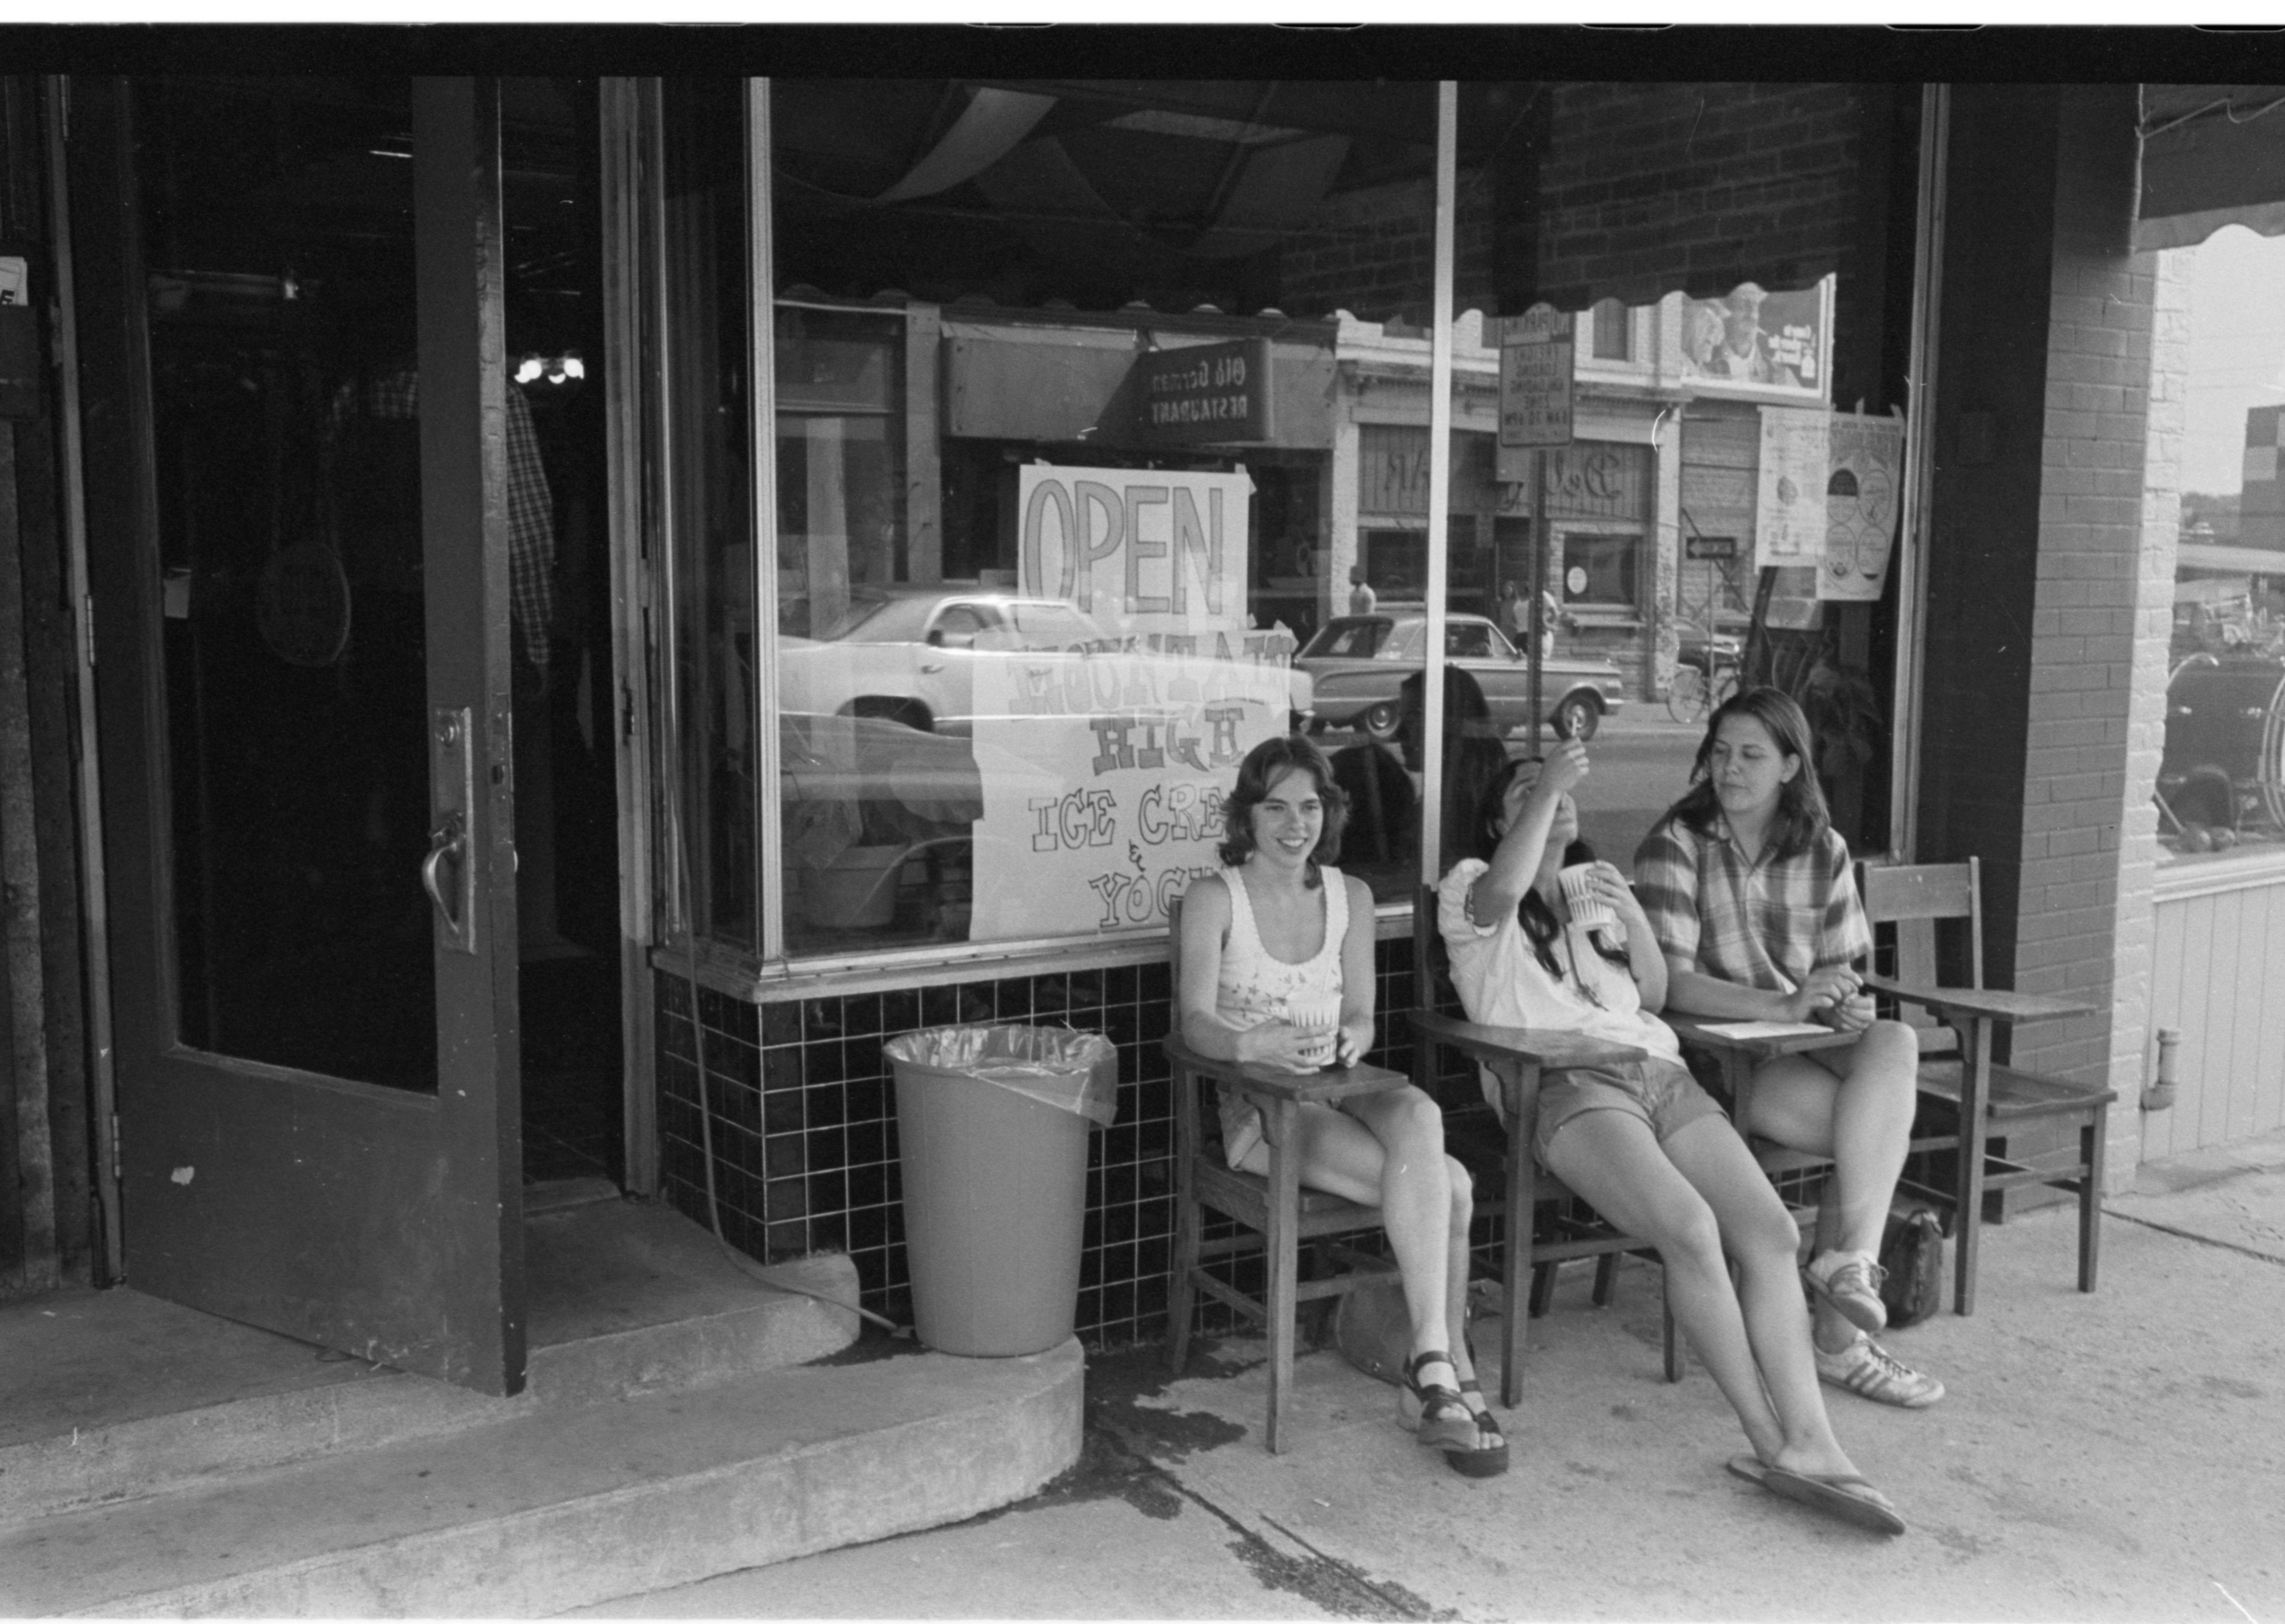 Mountain High Ice Cream Parlour, August 1974 image